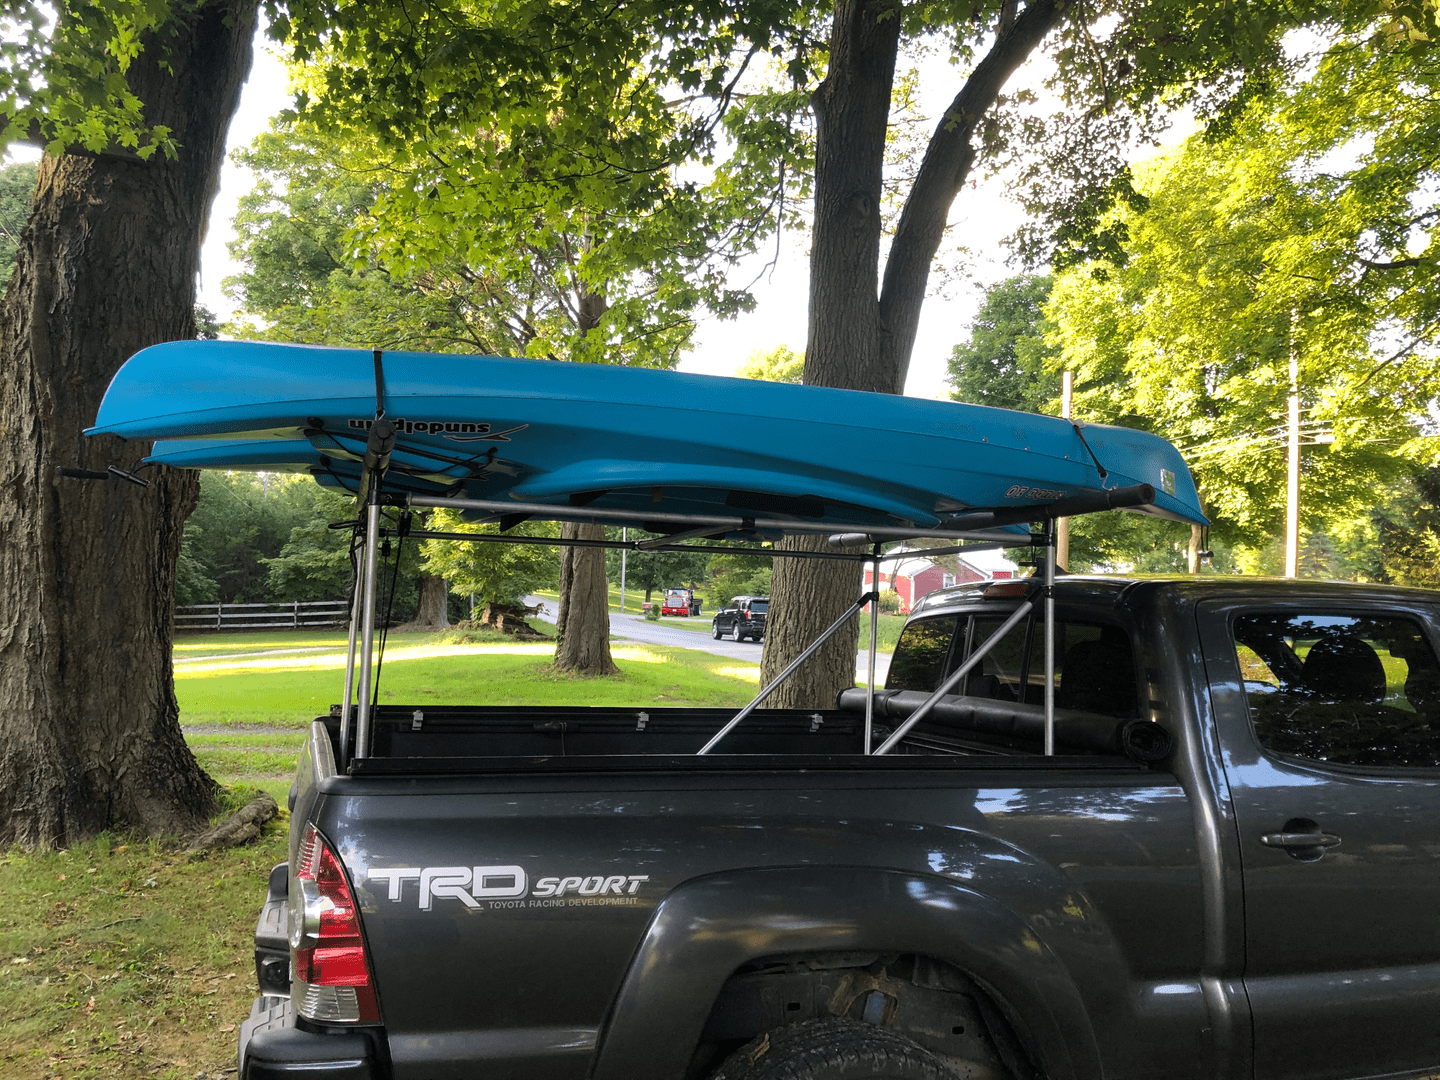 Custom Kayak Rack for a Truck Bed